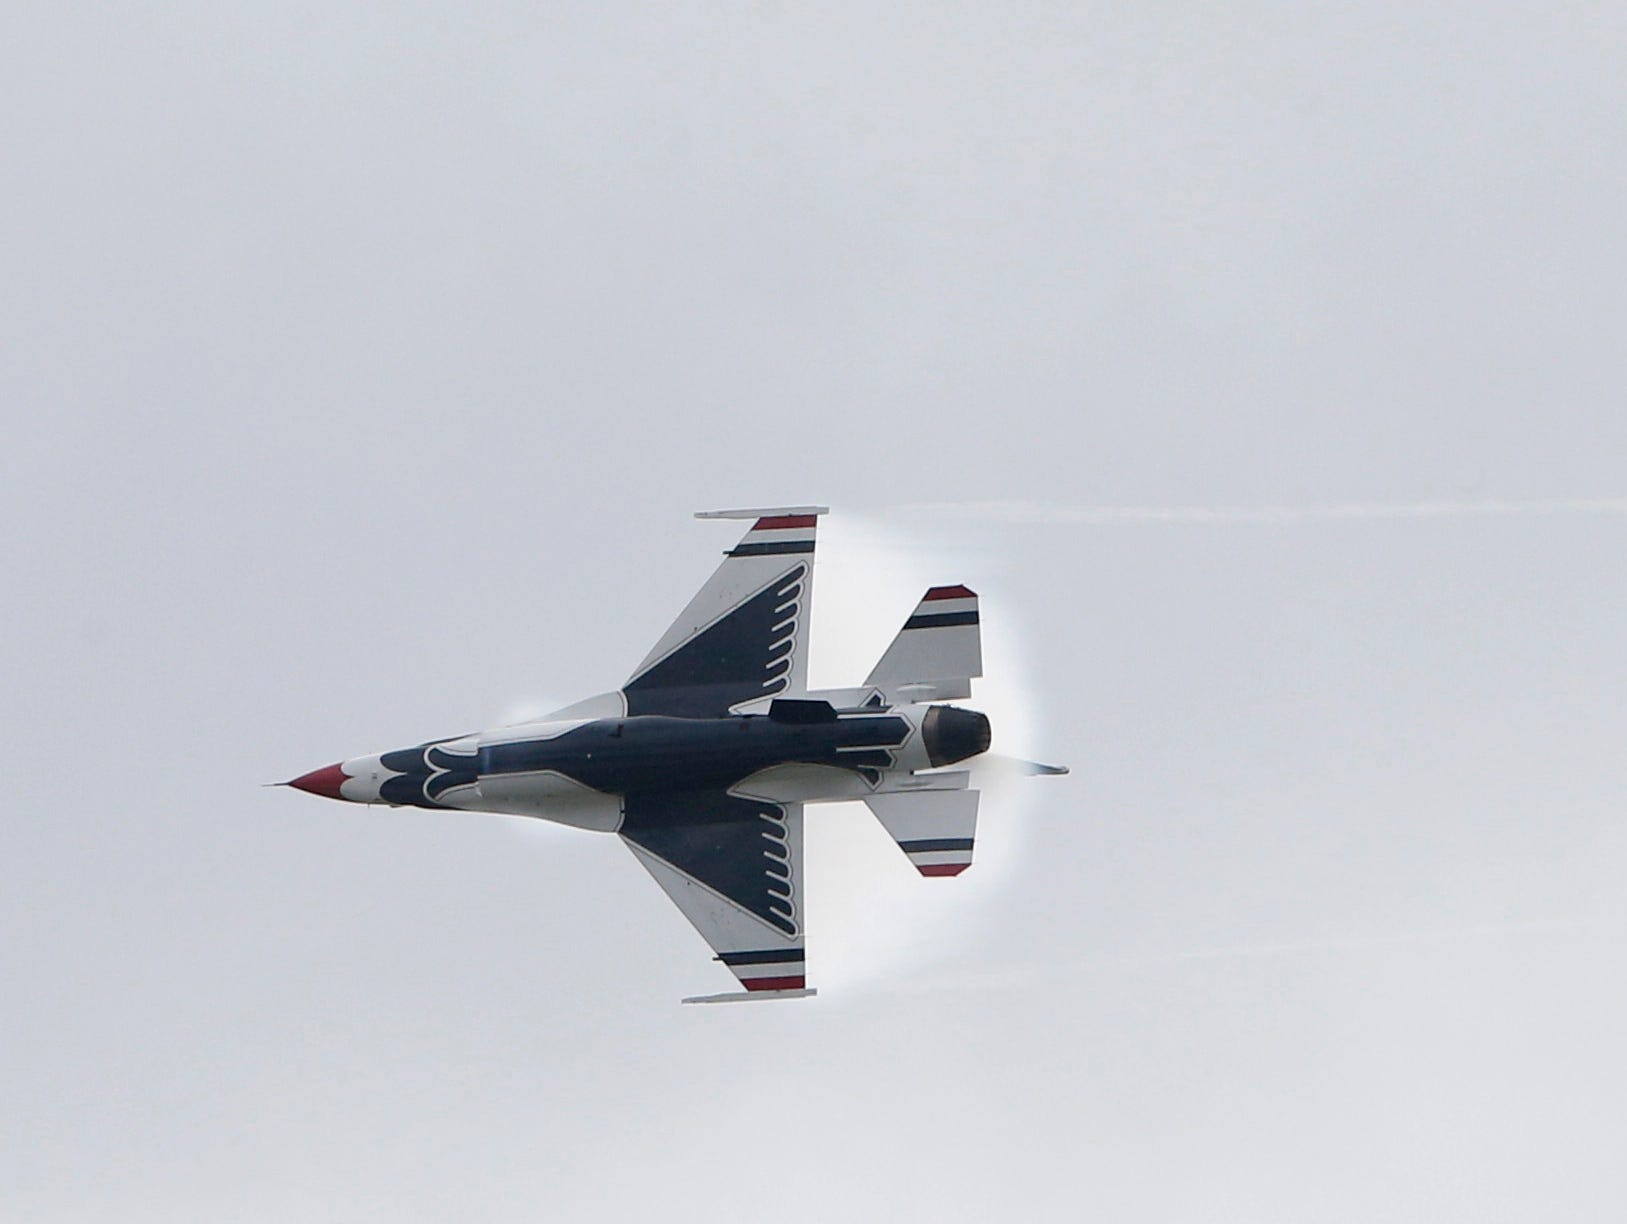 A F16 fighting falcon of the USAF Thunderbirds flies over Stewart Air Force Base in Newburgh on Sept 13, 2018. The Thunderbirds were practicing for the New York Airshow which happens Saturday & Sunday.